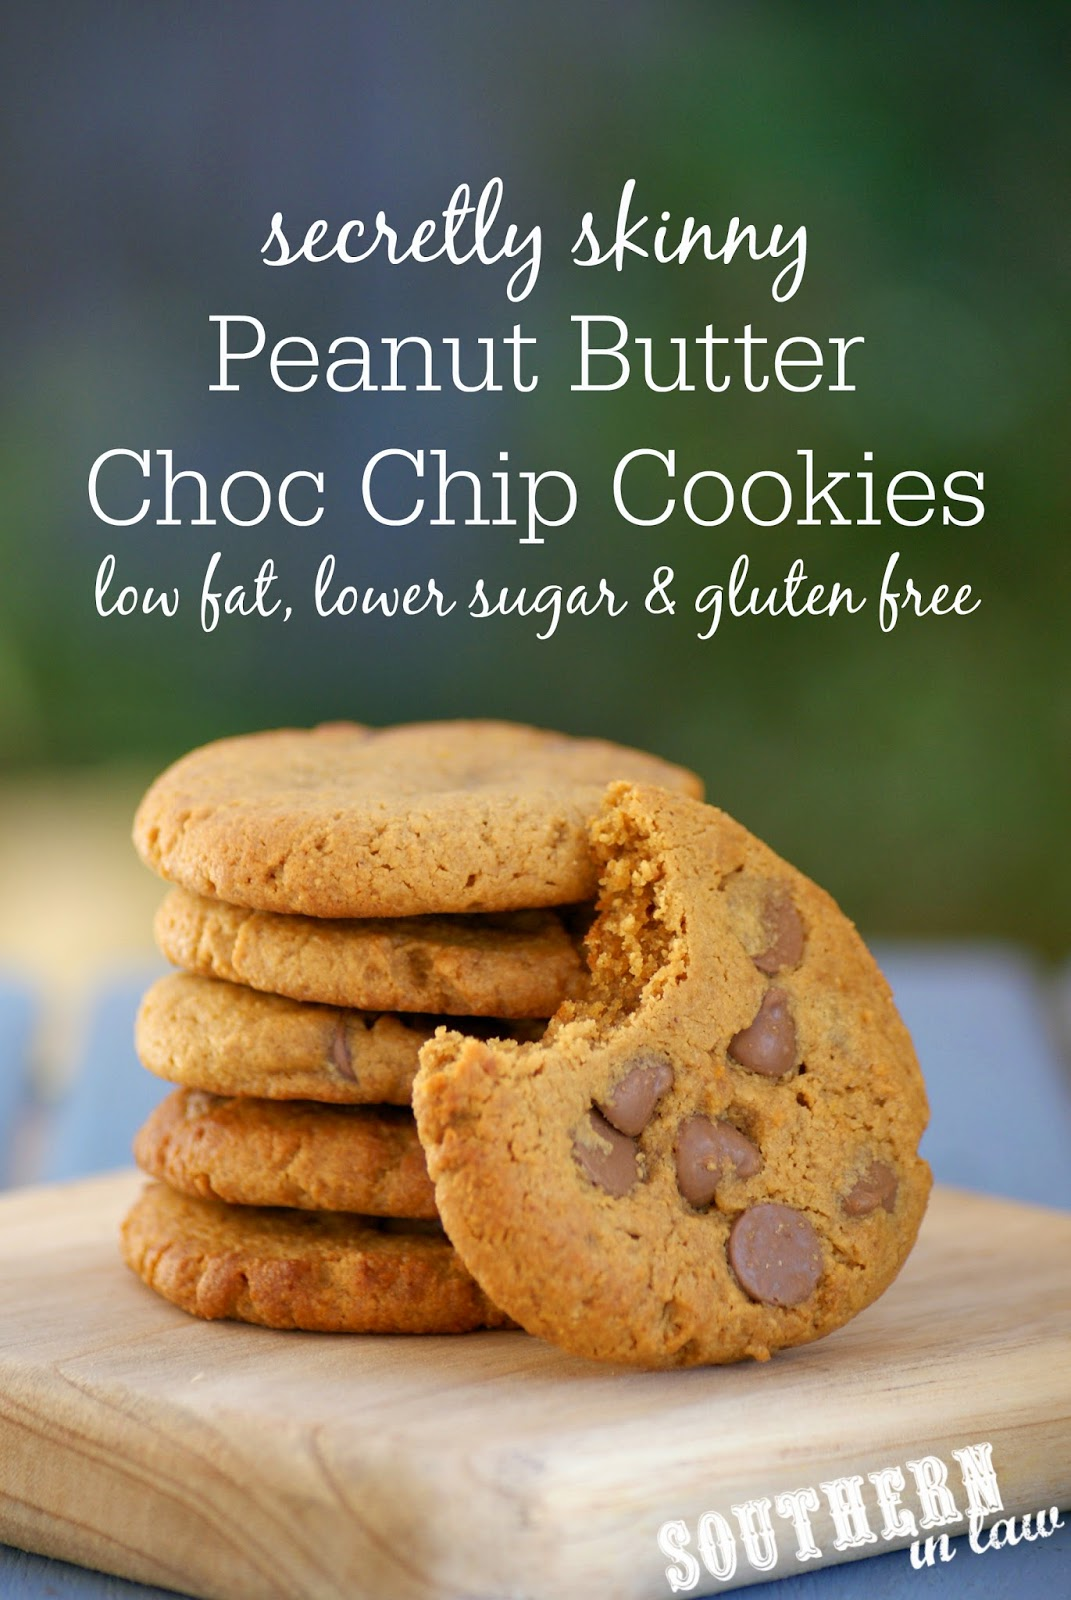 Secretly Skinny Peanut Butter Chocolate Chip Cookie Recipe - low fat, gluten free, healthy, low sugar - Peanut Flour Cookies Recipe